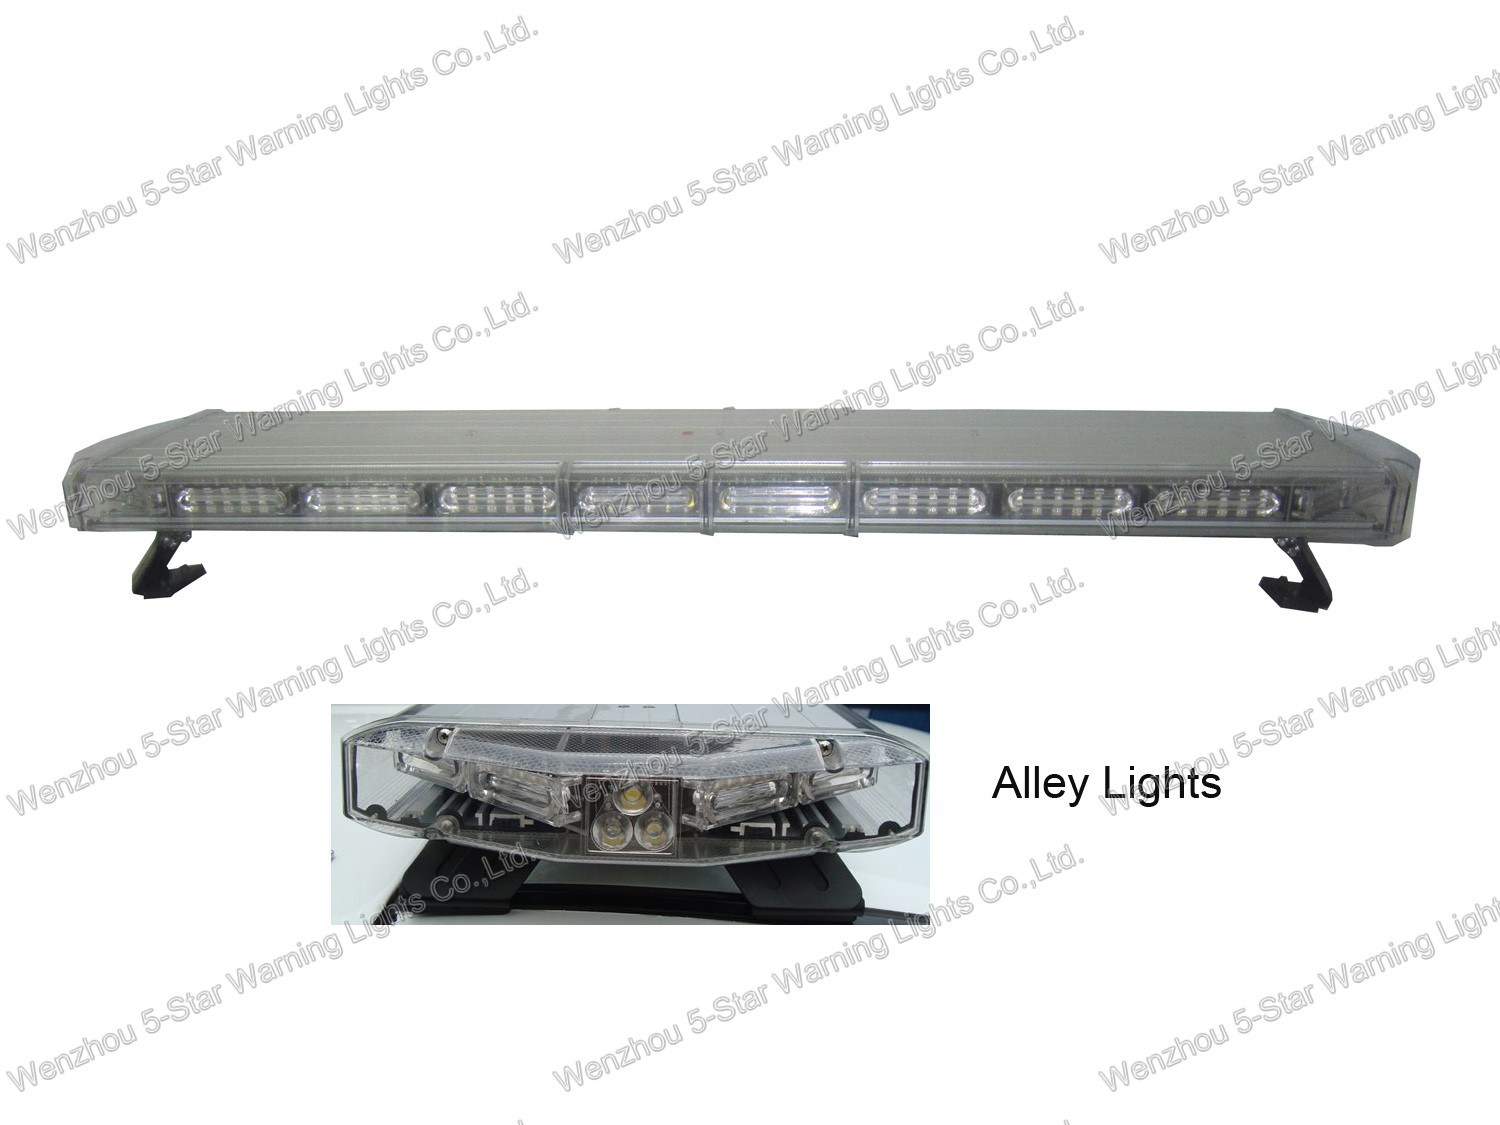 R10 New Design Super Bright LED Warning Lightbar for Firefighing, Police Car